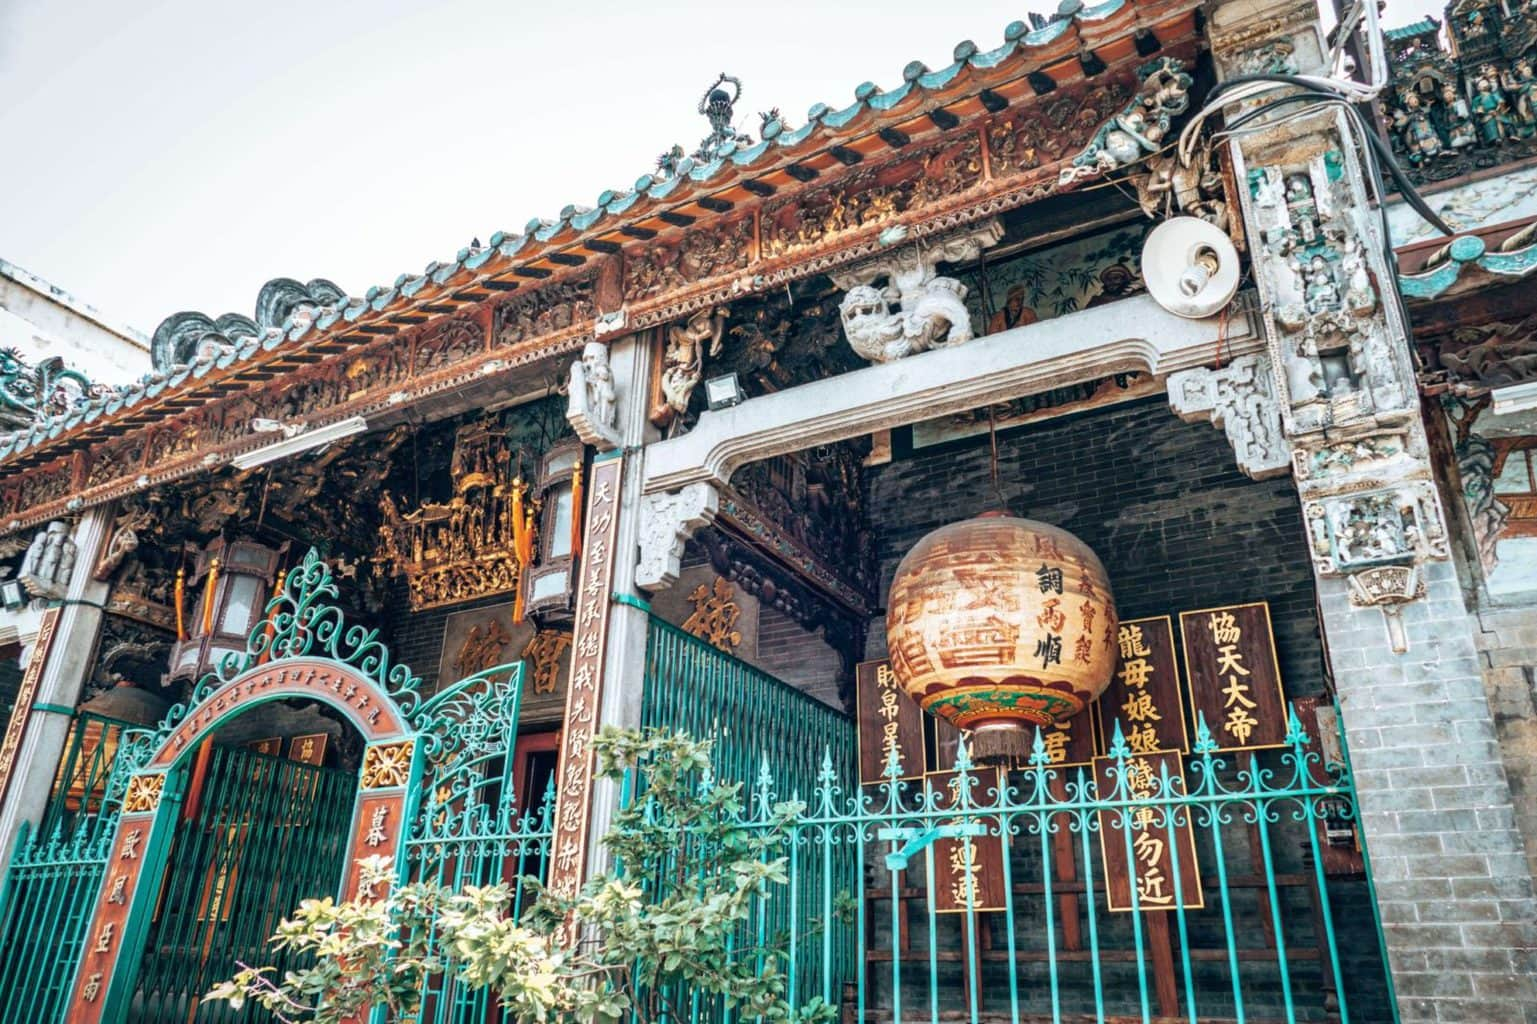 Picture of the Thien Hau Pagoda in Ho Chi Minh City, Vietnam